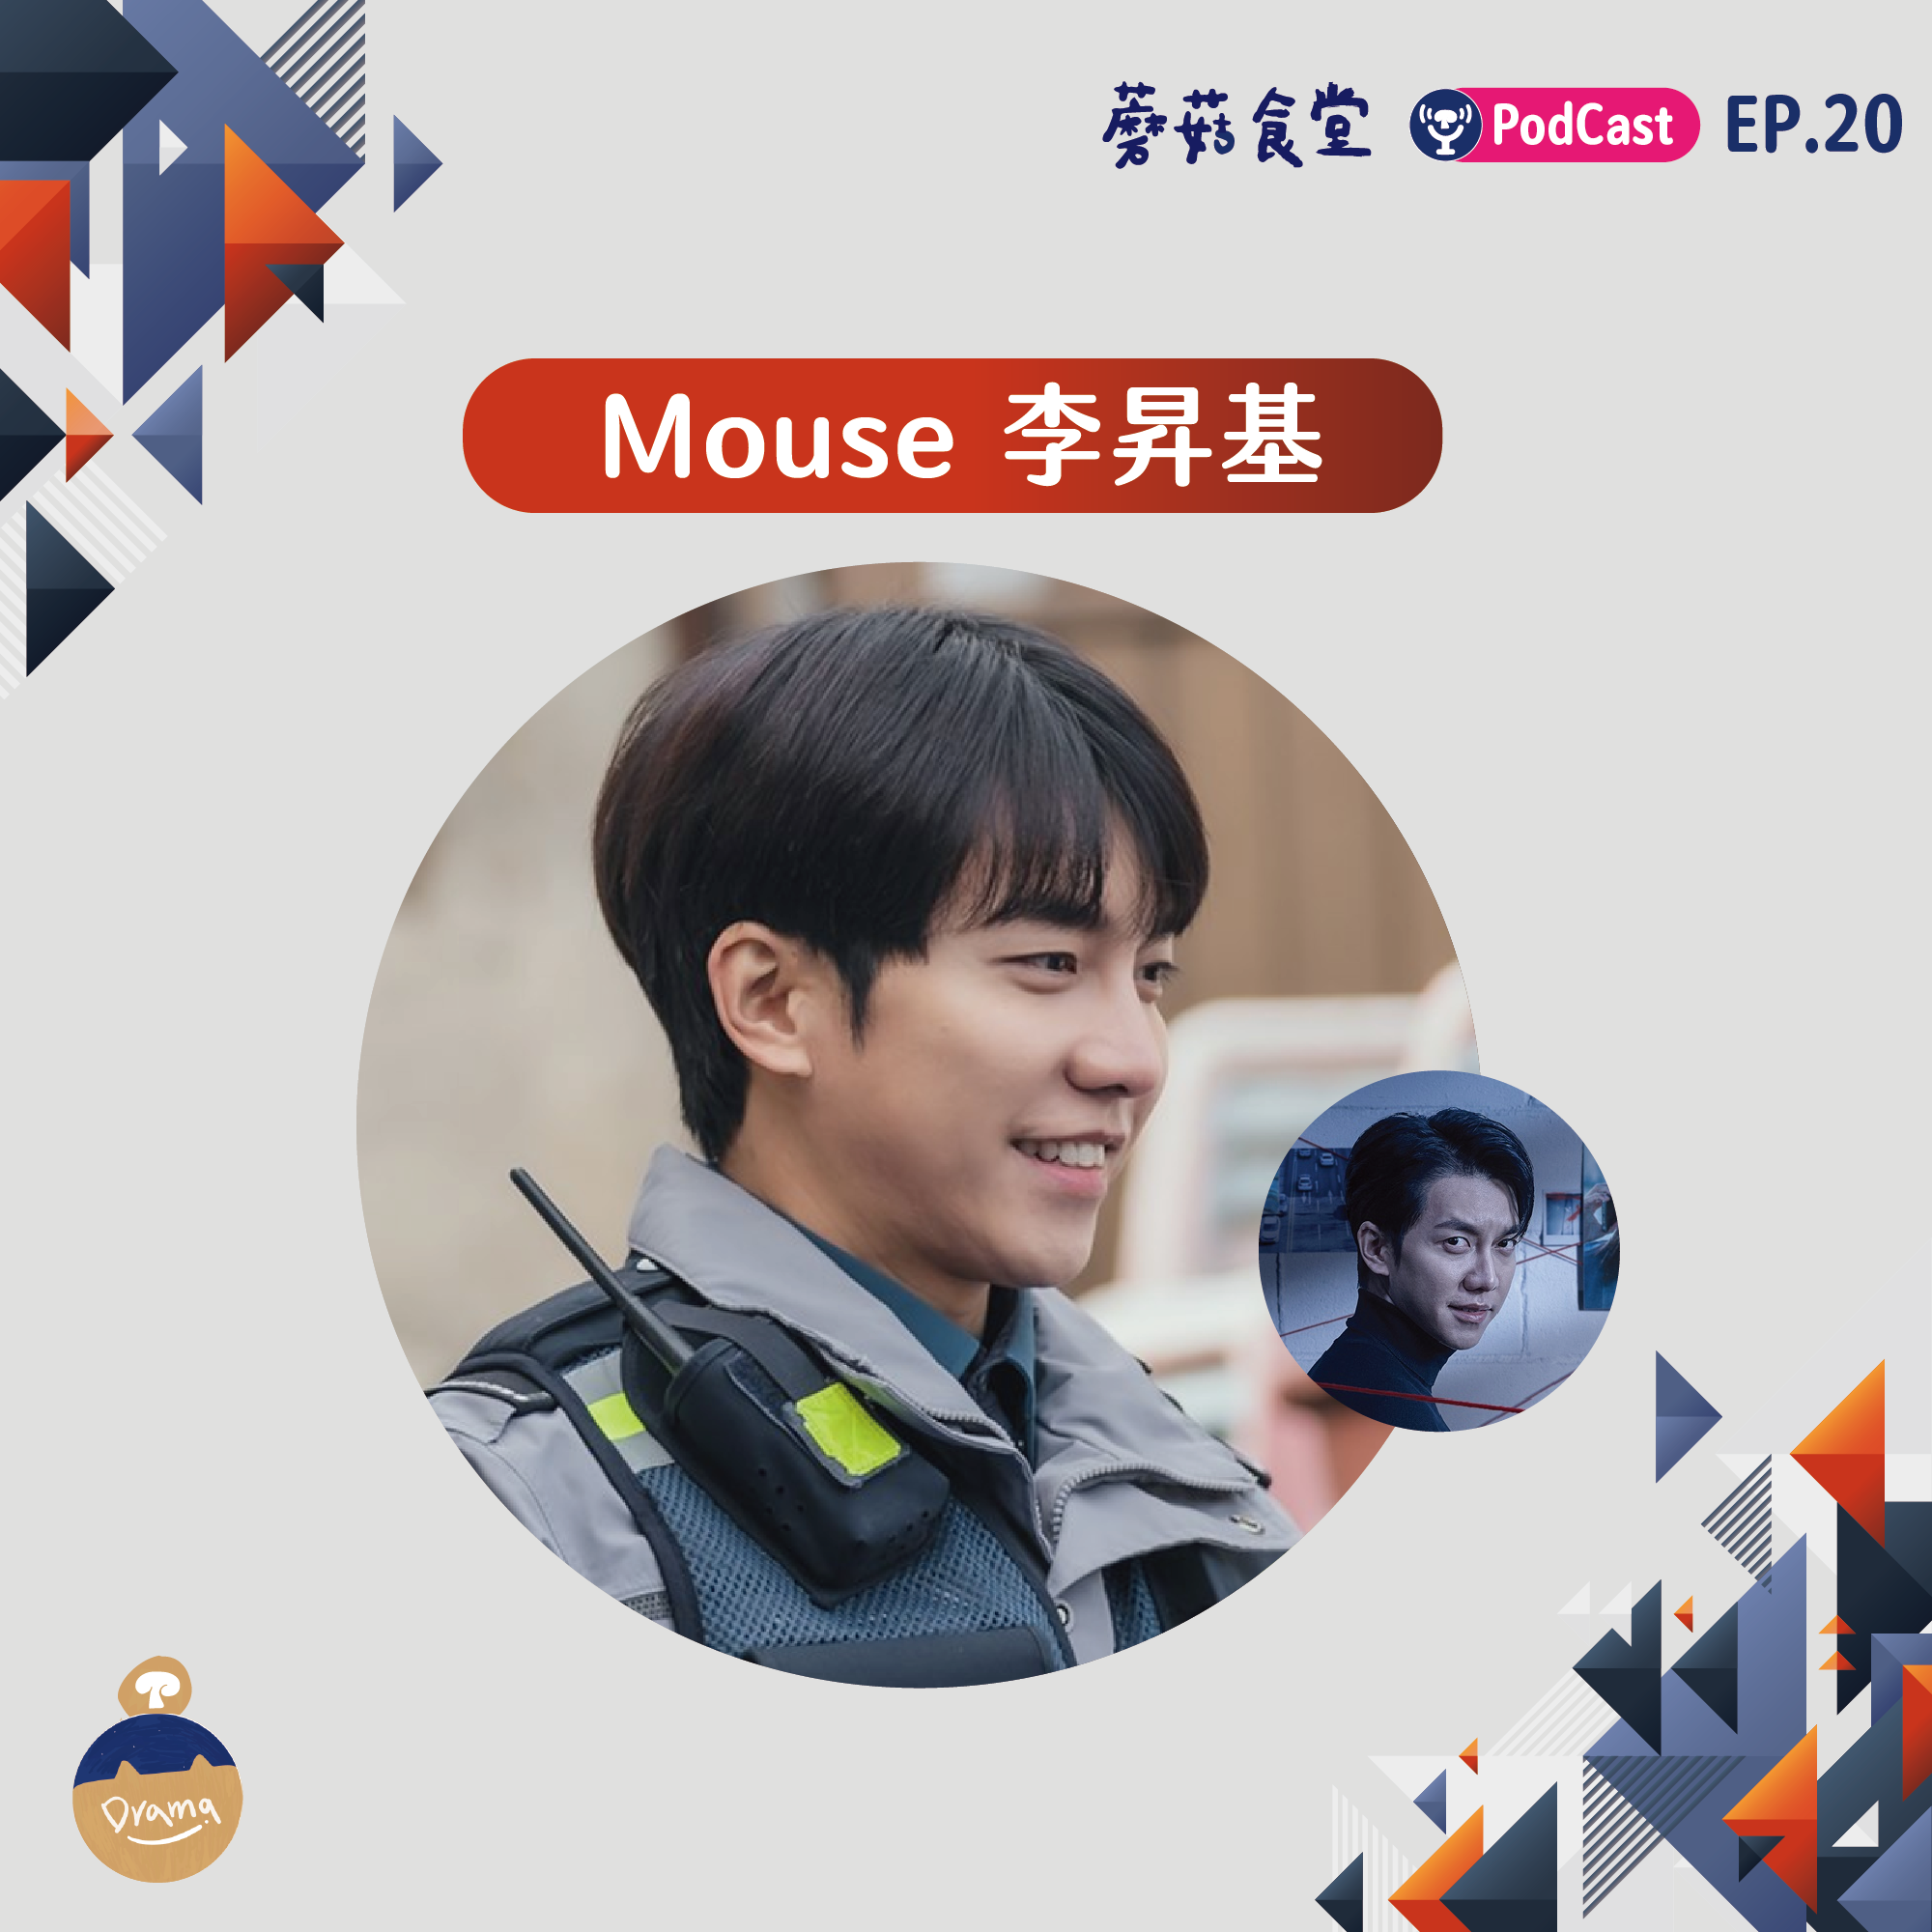 Ep20:Mouse 李昇基 | feat. Podcast 20集 小特輯